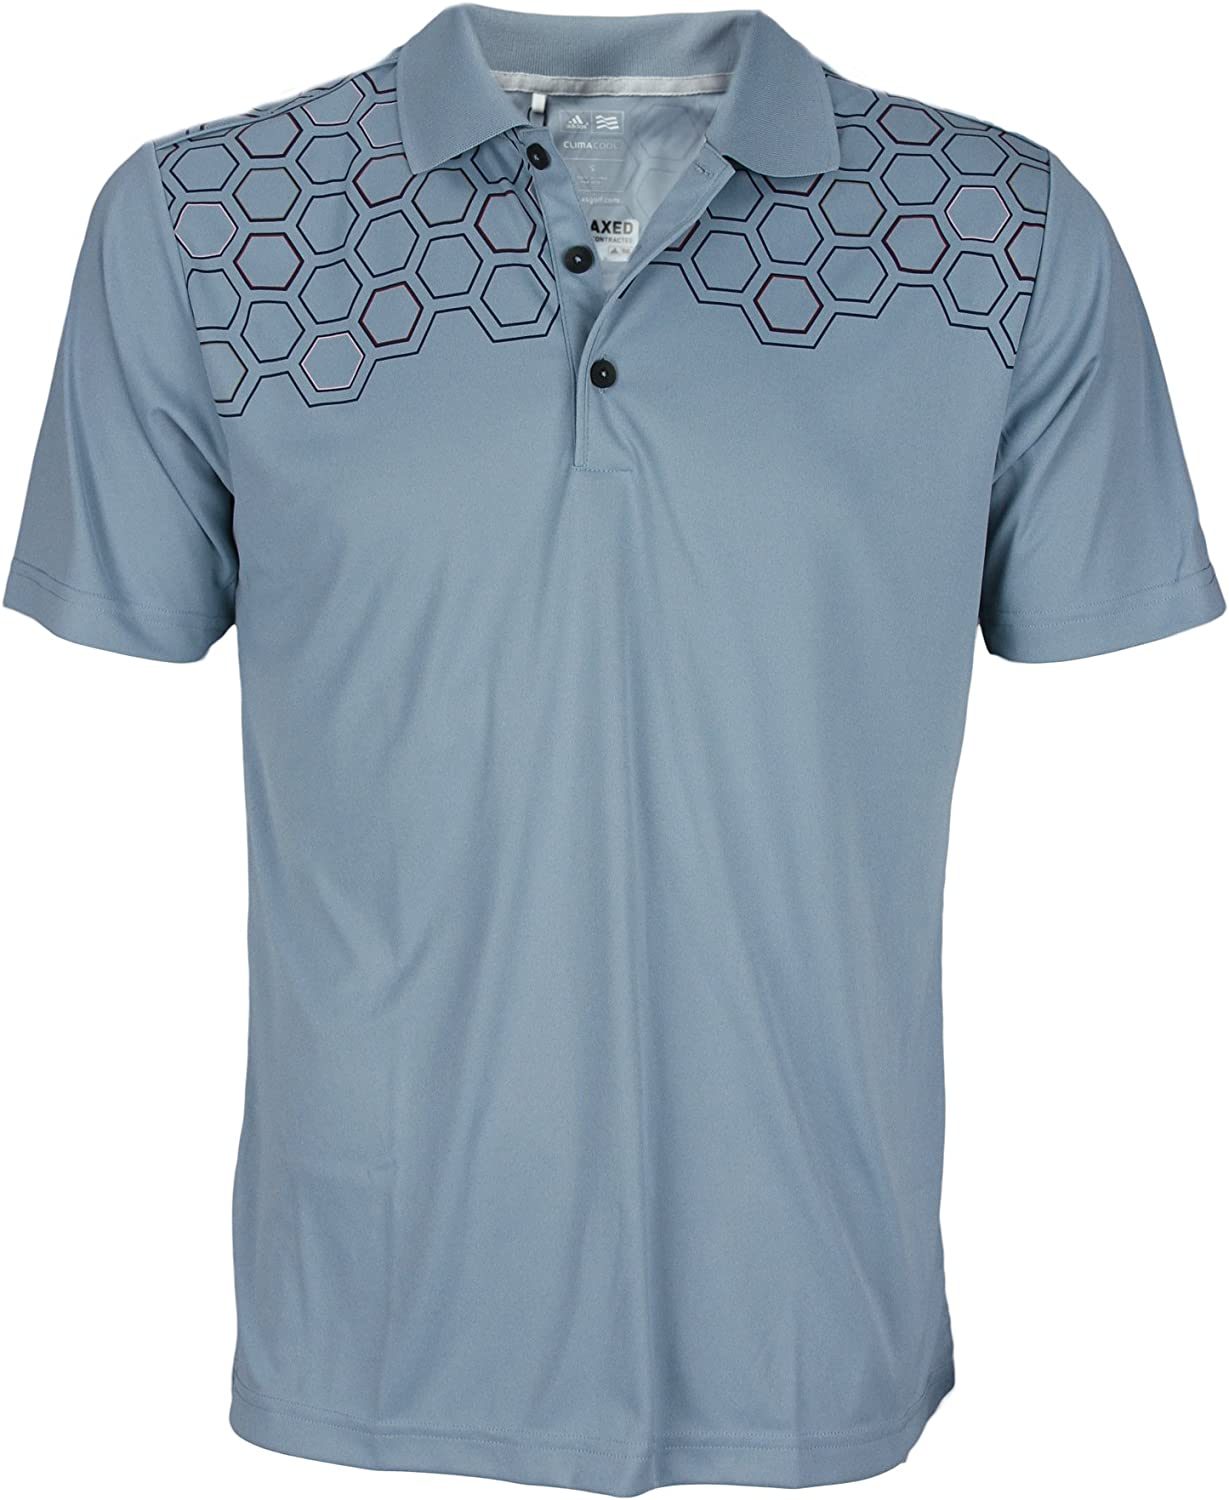 adidas Mens Climacool Hexagon Chest Print Relaxed Polo Shirt